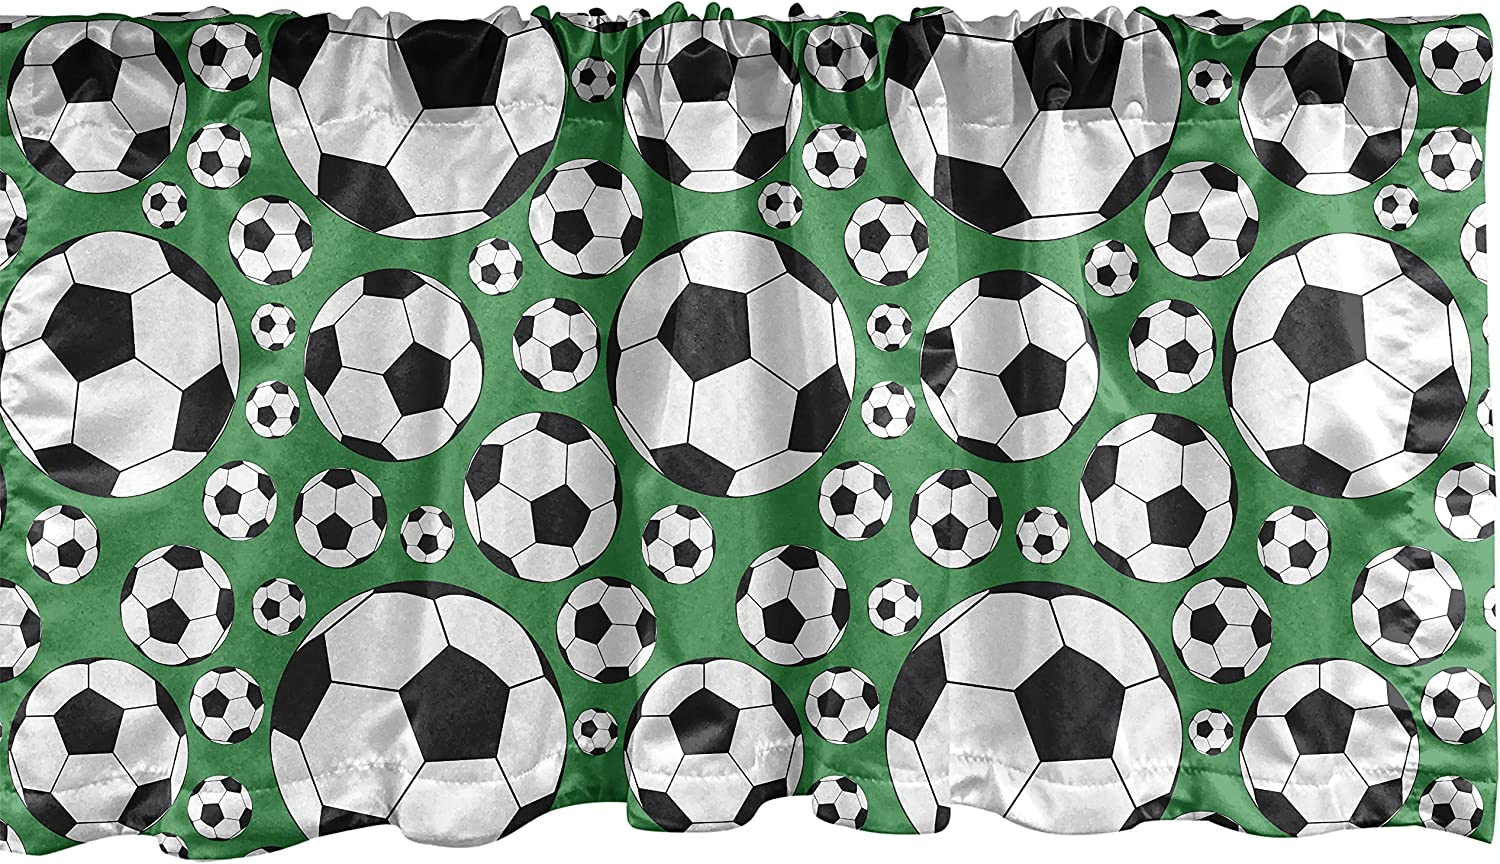 Ambesonne Soccer Window Valance, Various Sizes Footballs Pattern Active Lifestyle Popular Sport from Europe, Curtain Valance for Kitchen Bedroom Decor with Rod Pocket, 54